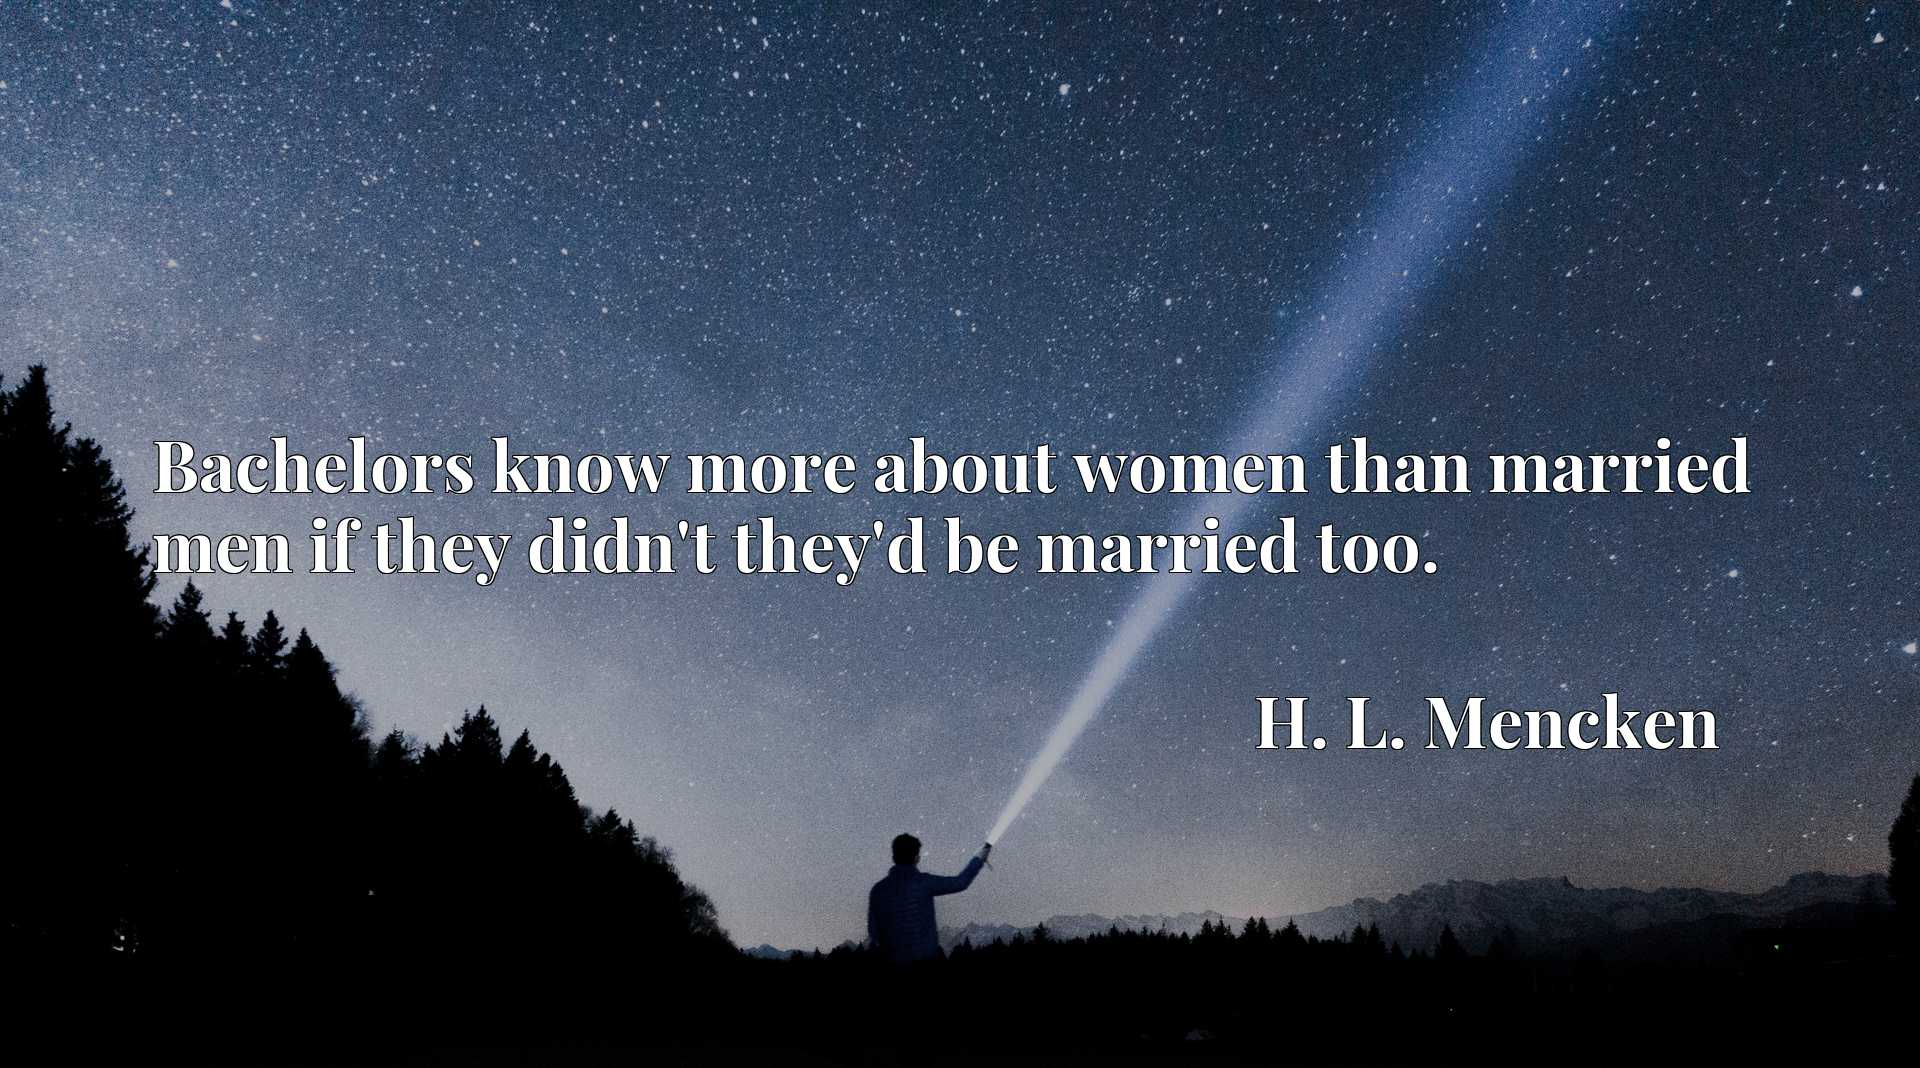 Bachelors know more about women than married men if they didn't they'd be married too.